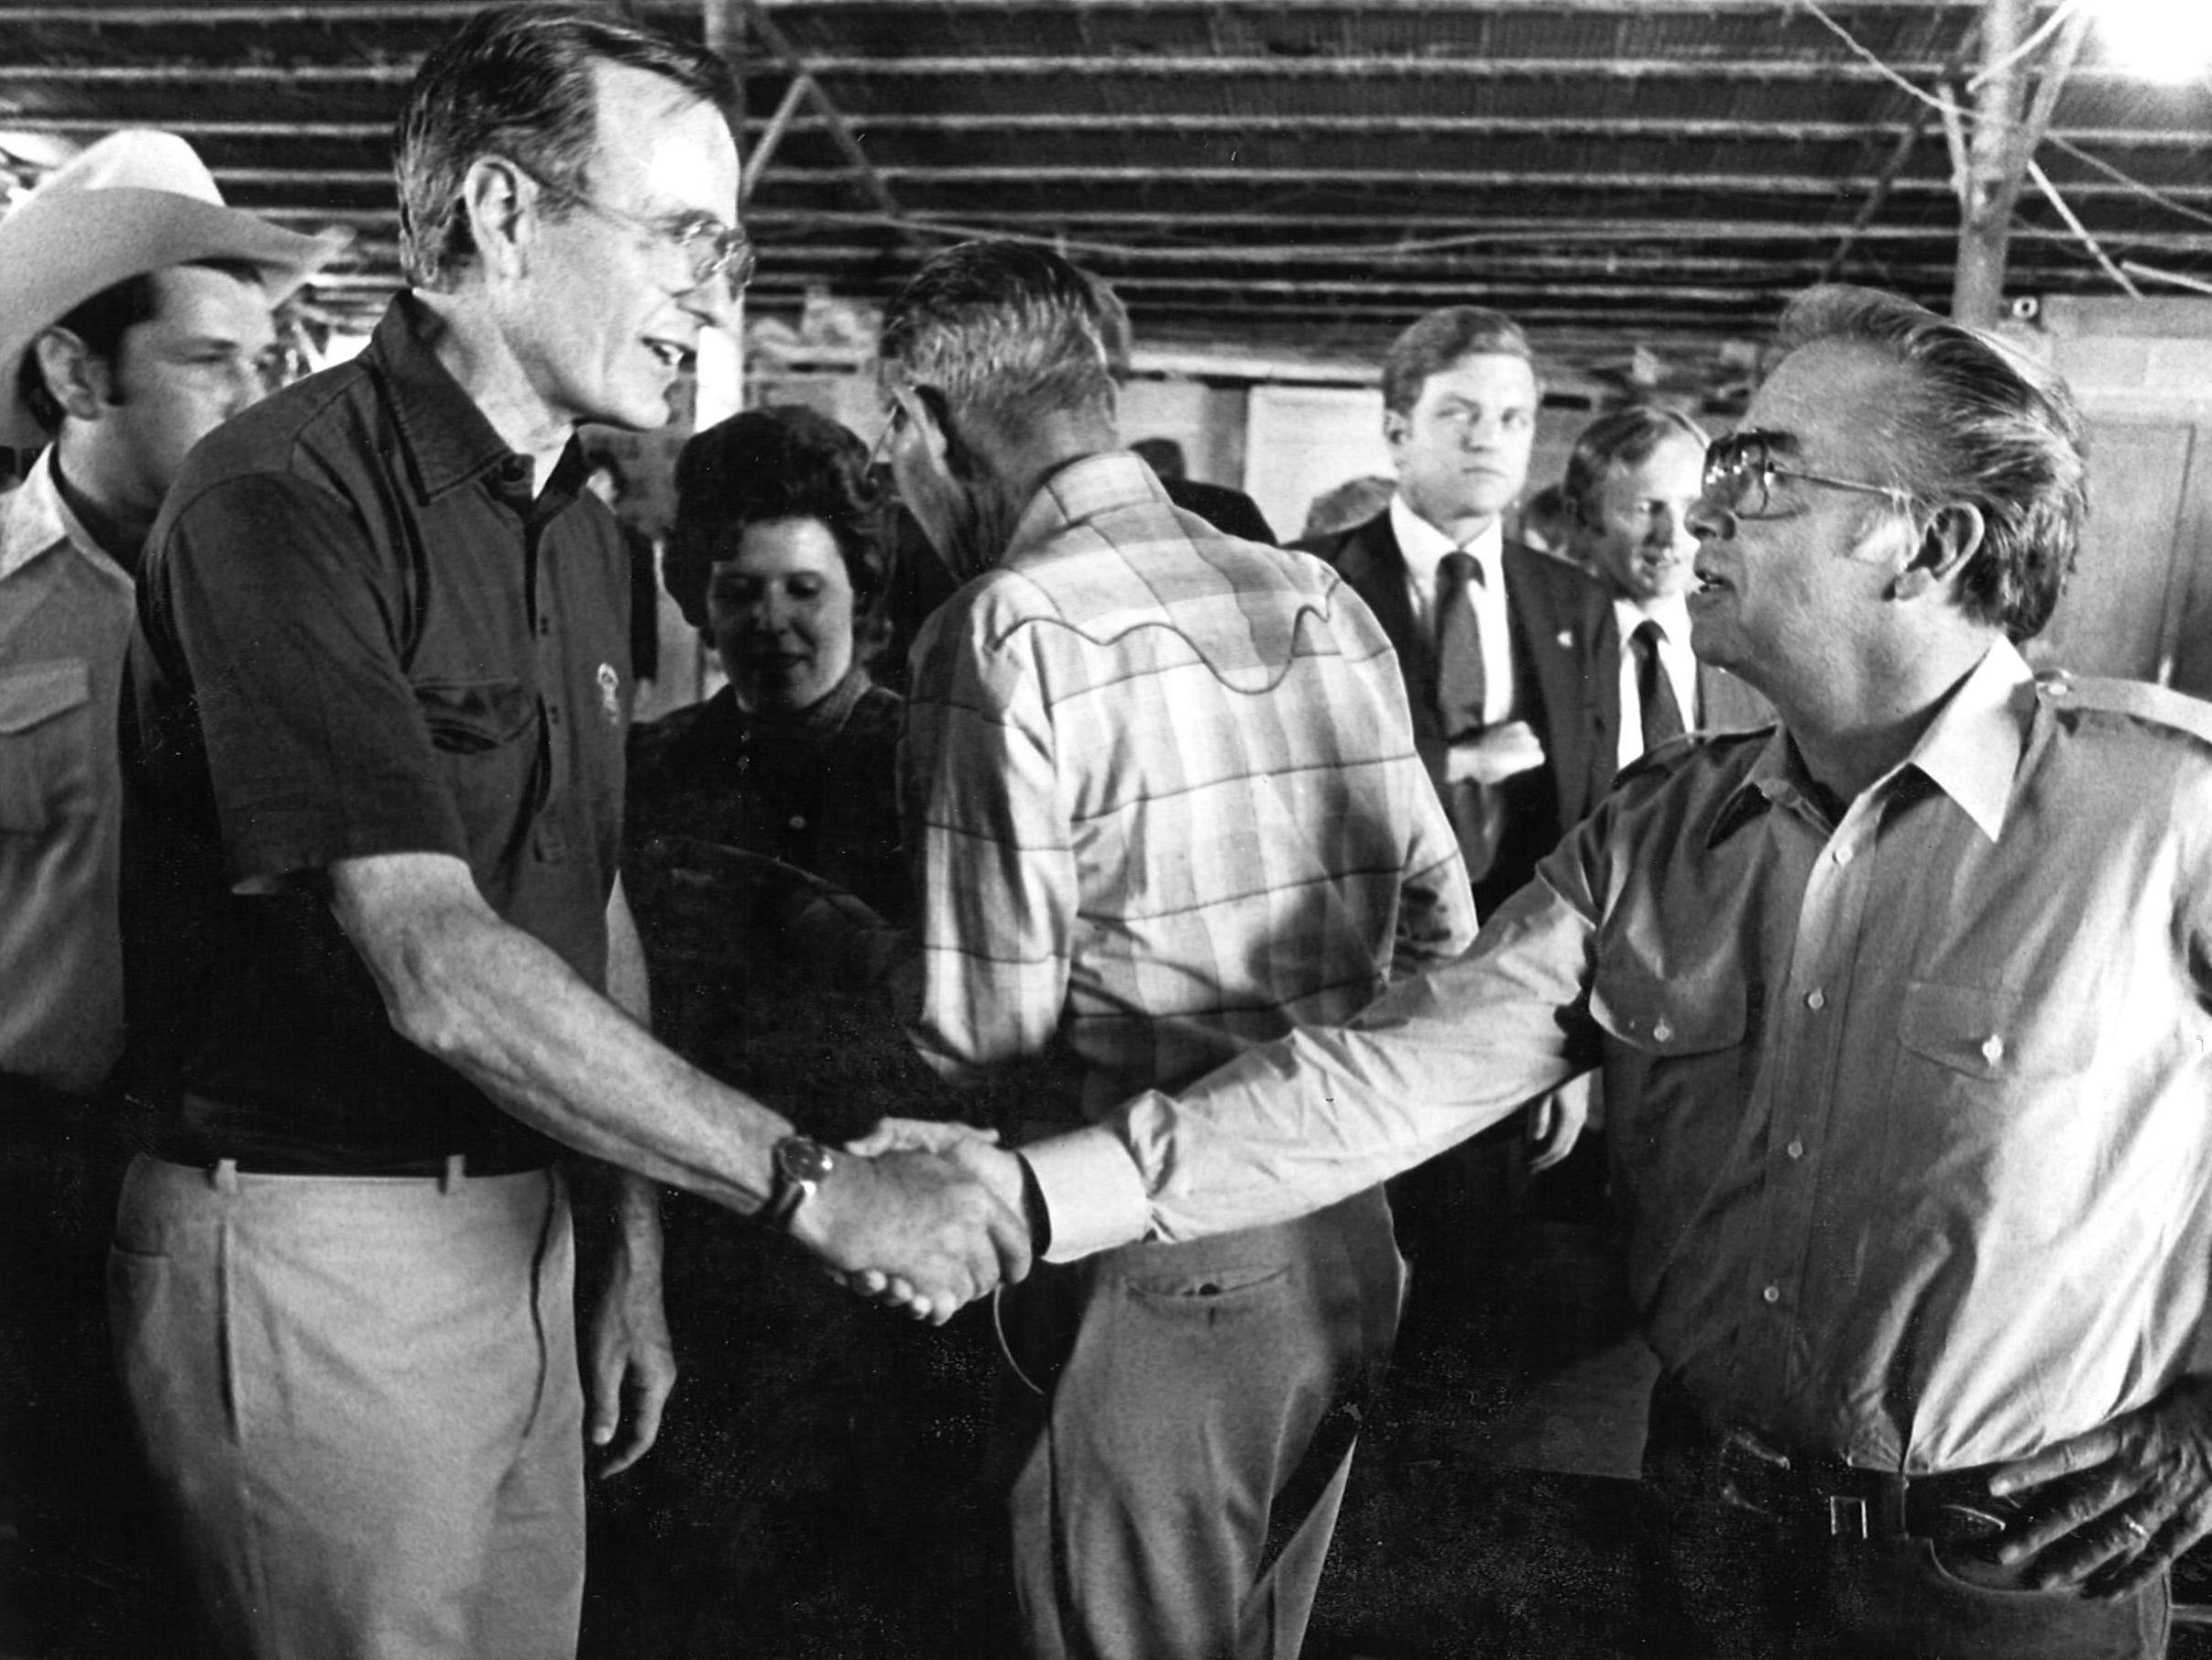 Vice President George Bush greets a guest at a barbecue on Oct. 16, 1982 in Pecos.